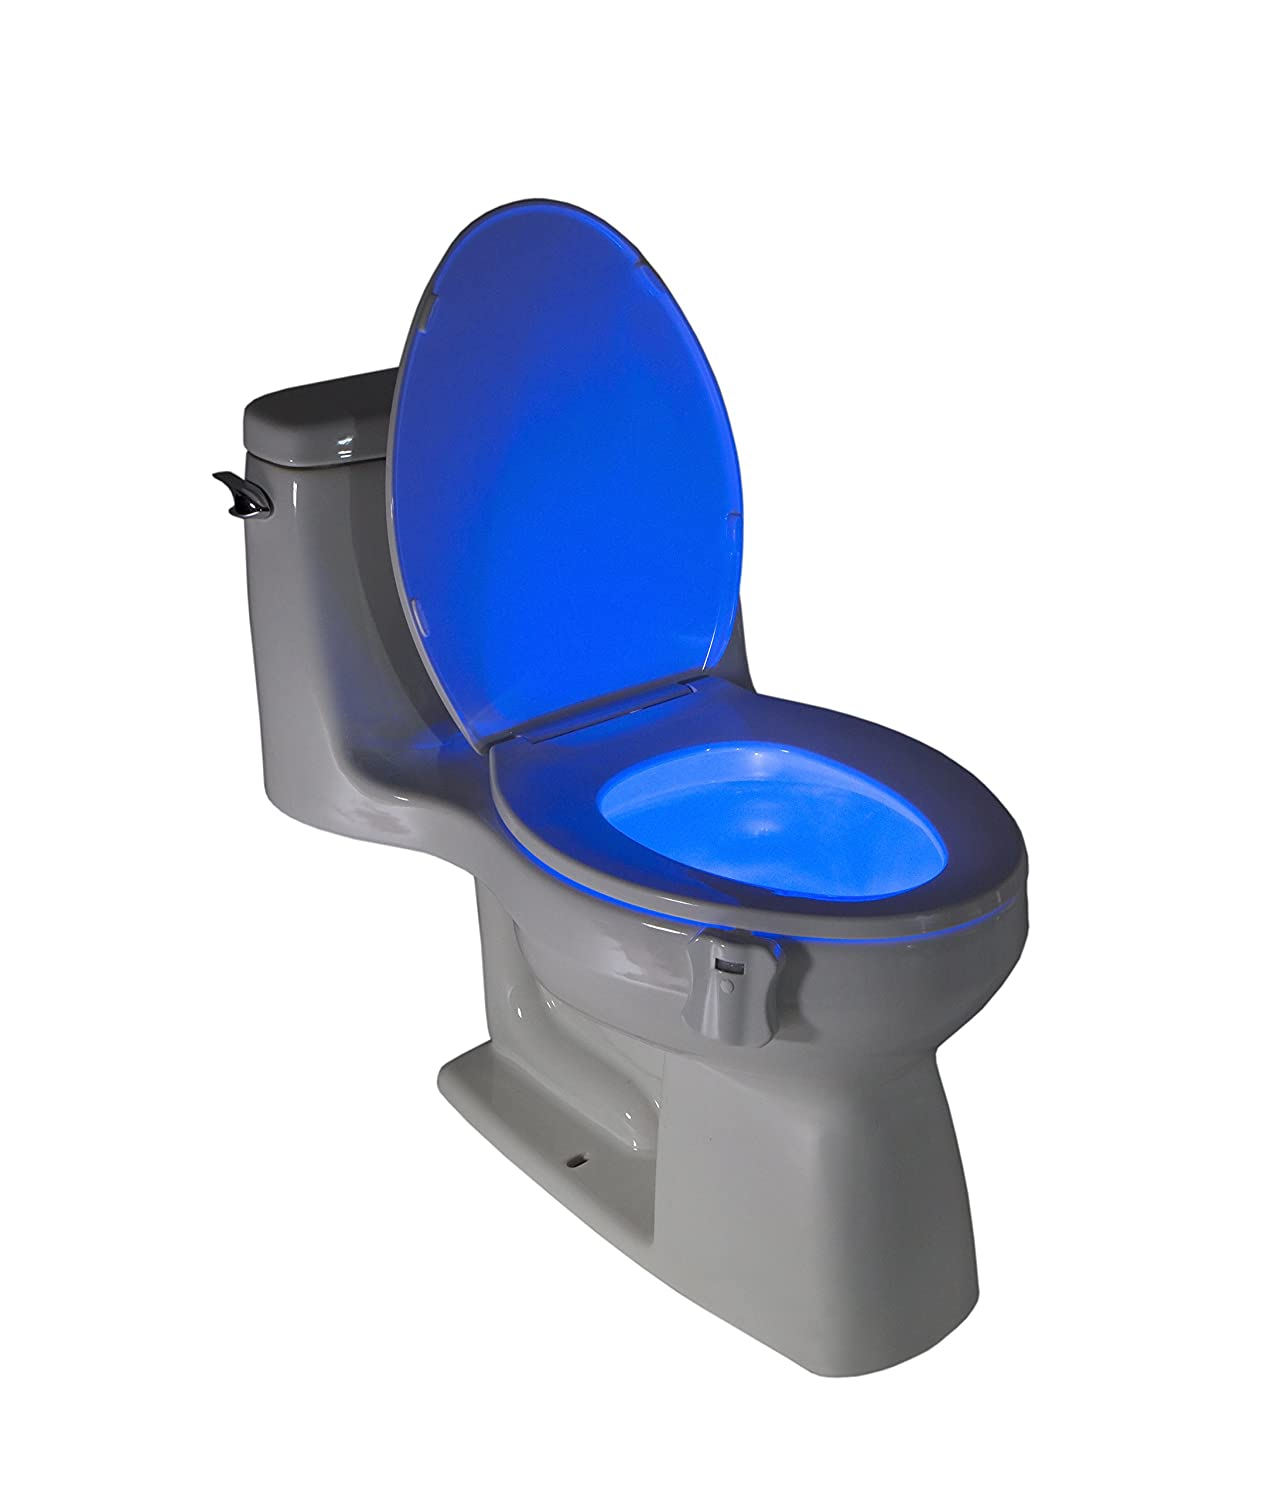 GlowBowl 54564 A-00452-01 Motion Activated Toilet Nightlight ...